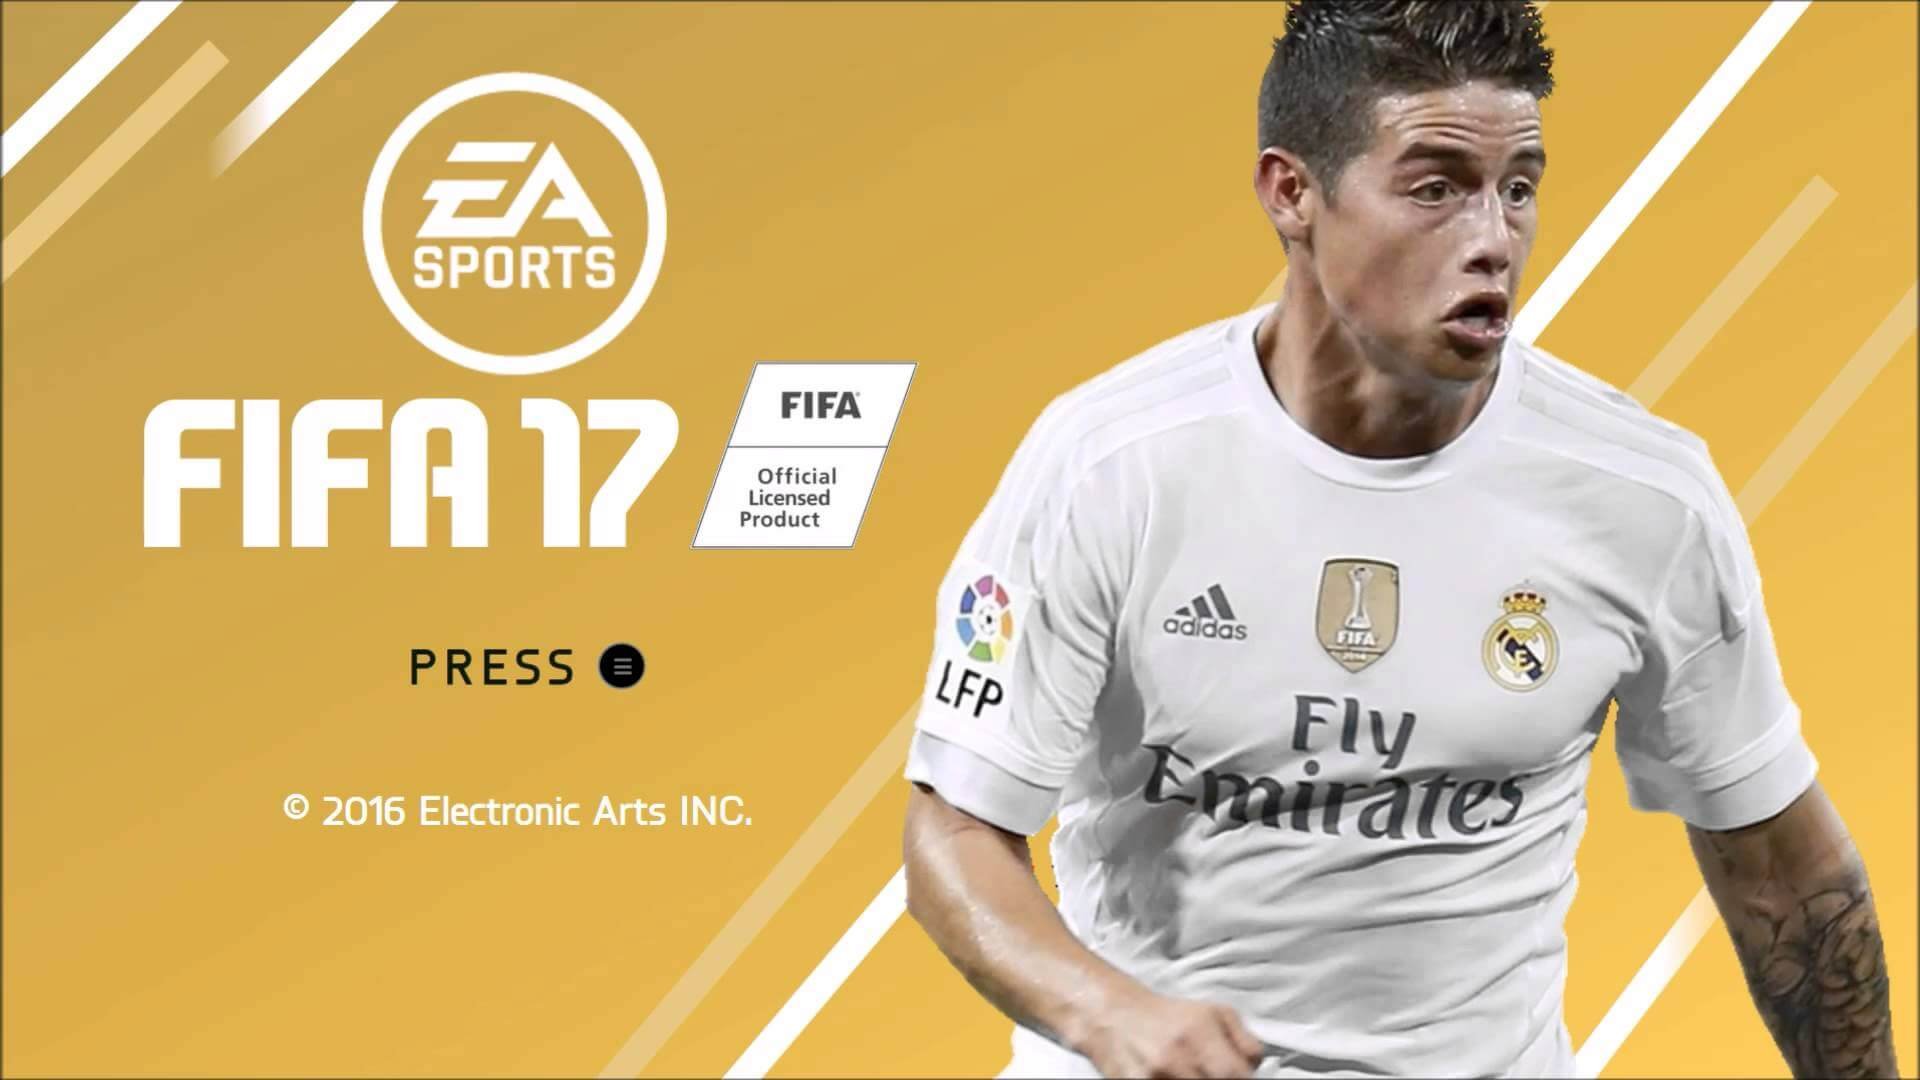 FIFA 17 Download Crack Free + Torrent